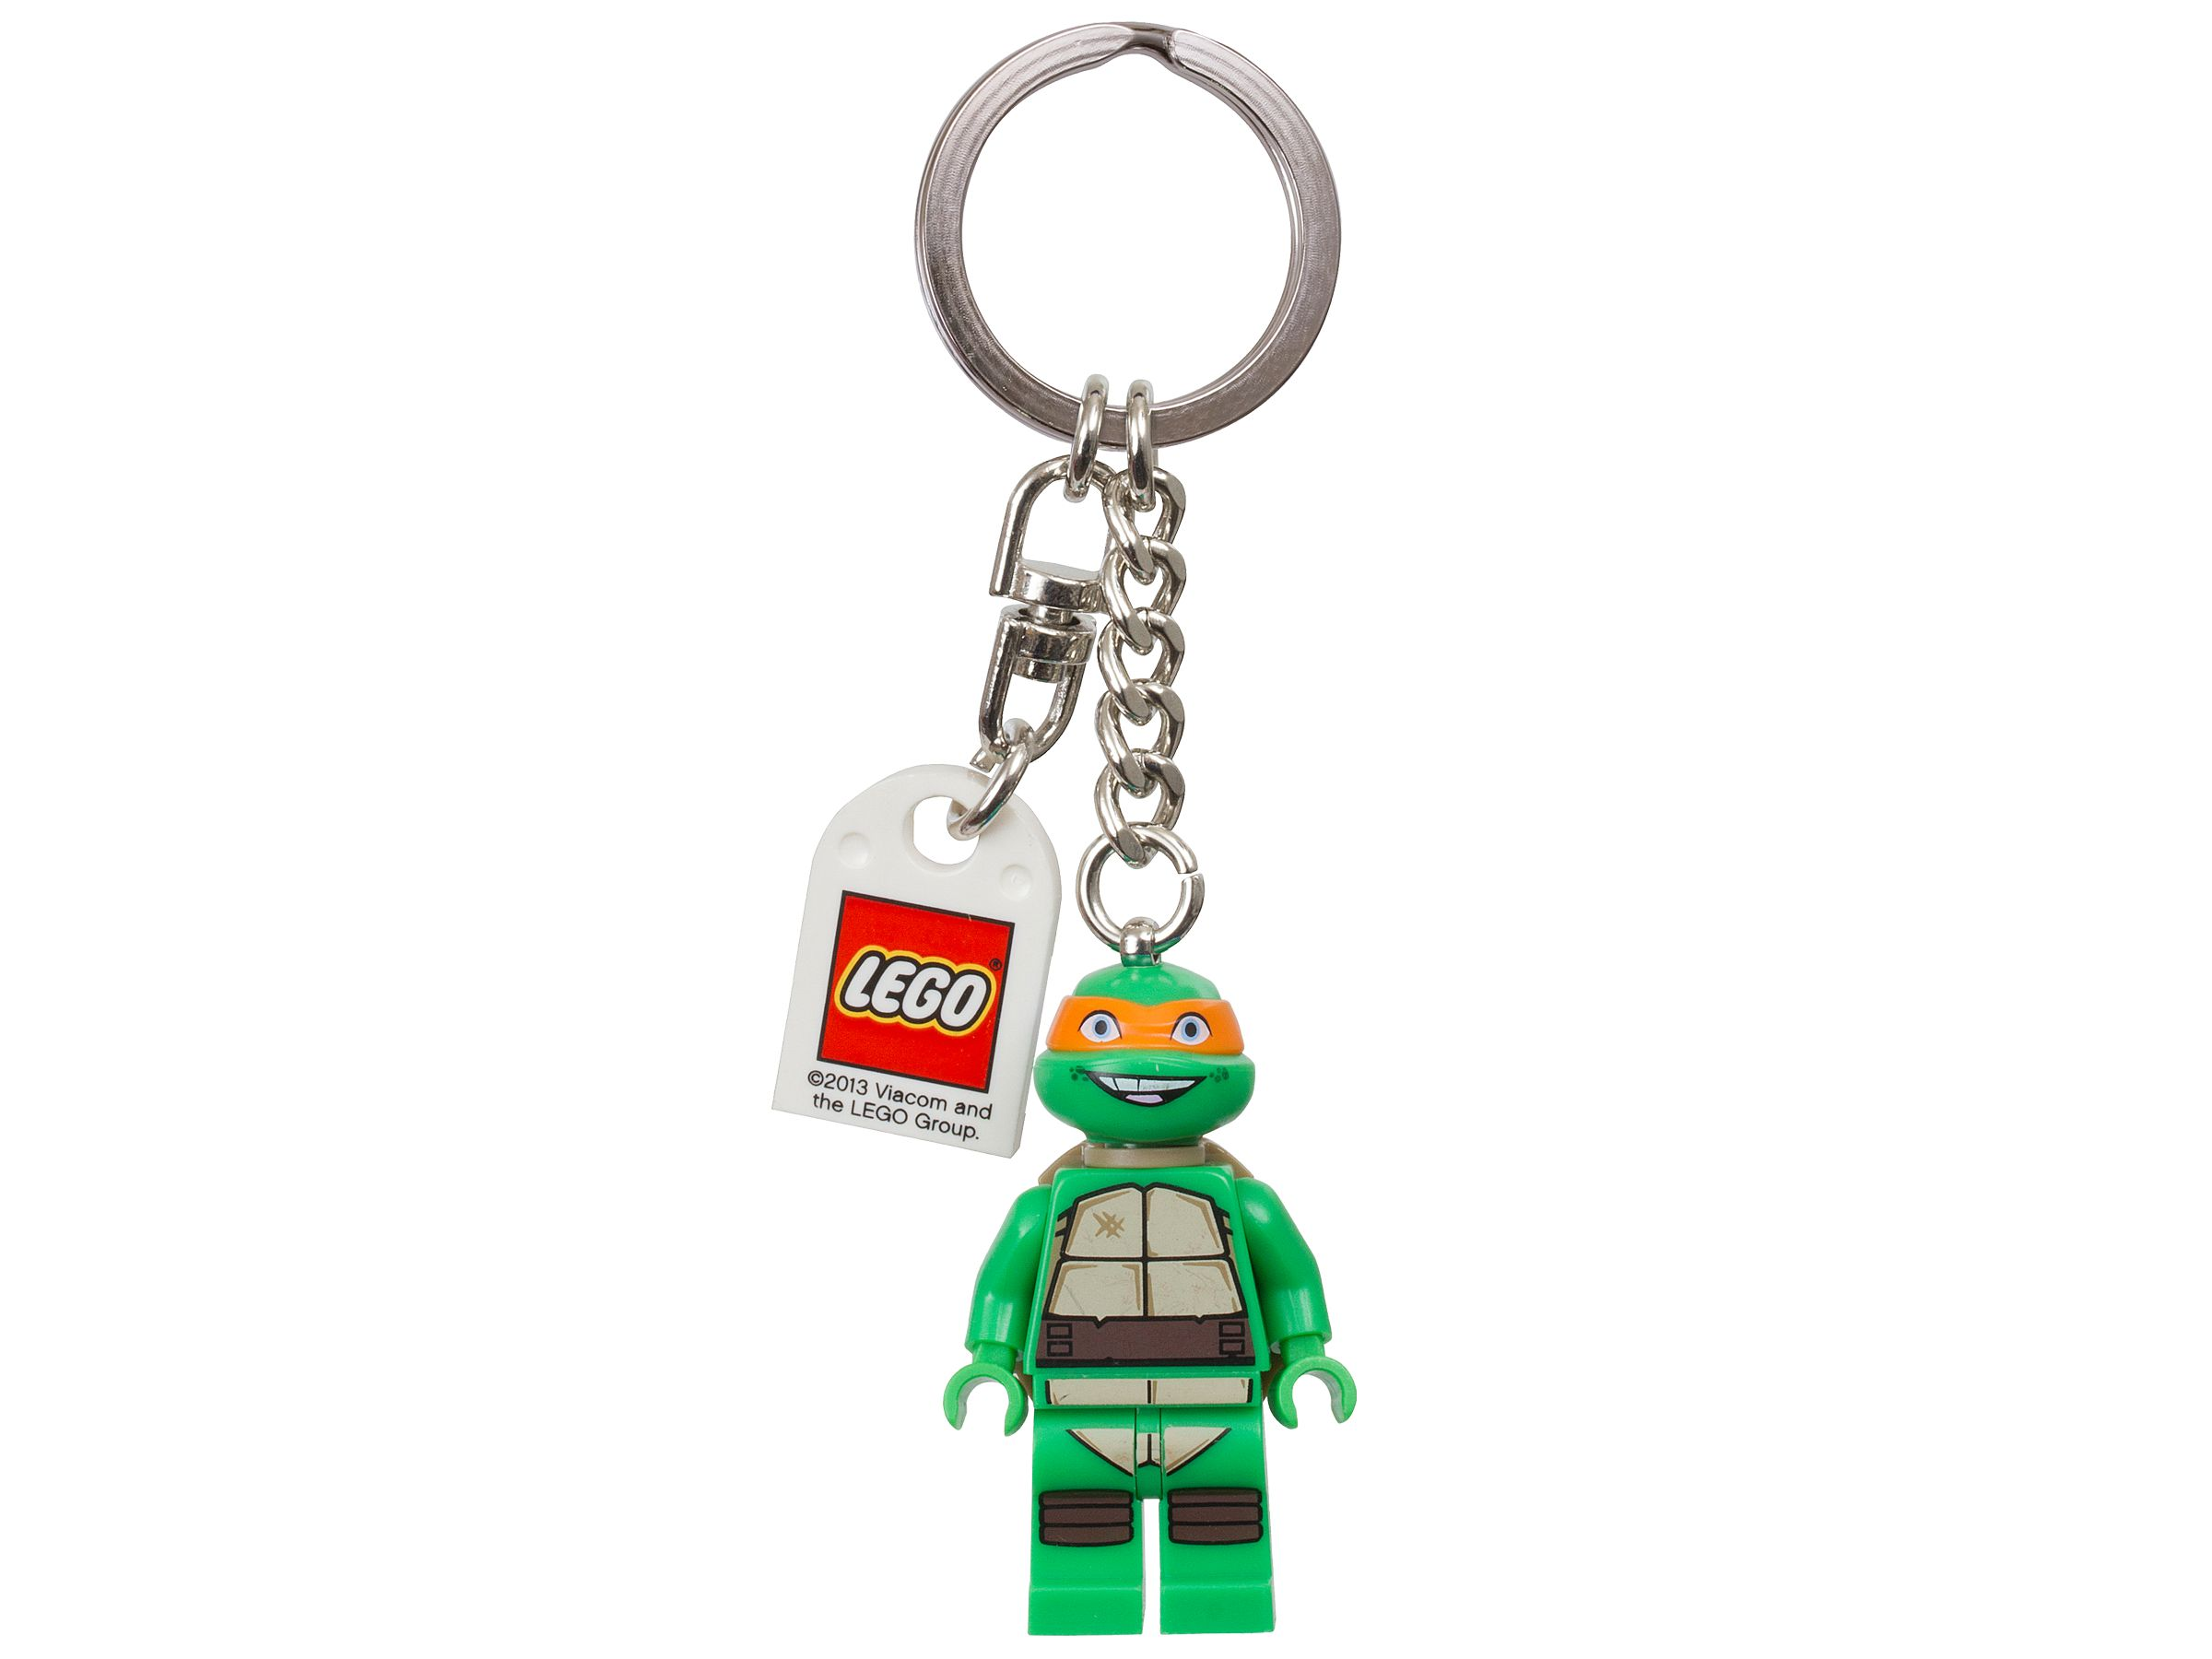 LEGO Gear 850653 LEGO® Teenage Mutant Ninja Turtles™ Michelangelo Schlüsselanhänger LEGO_850653.jpg